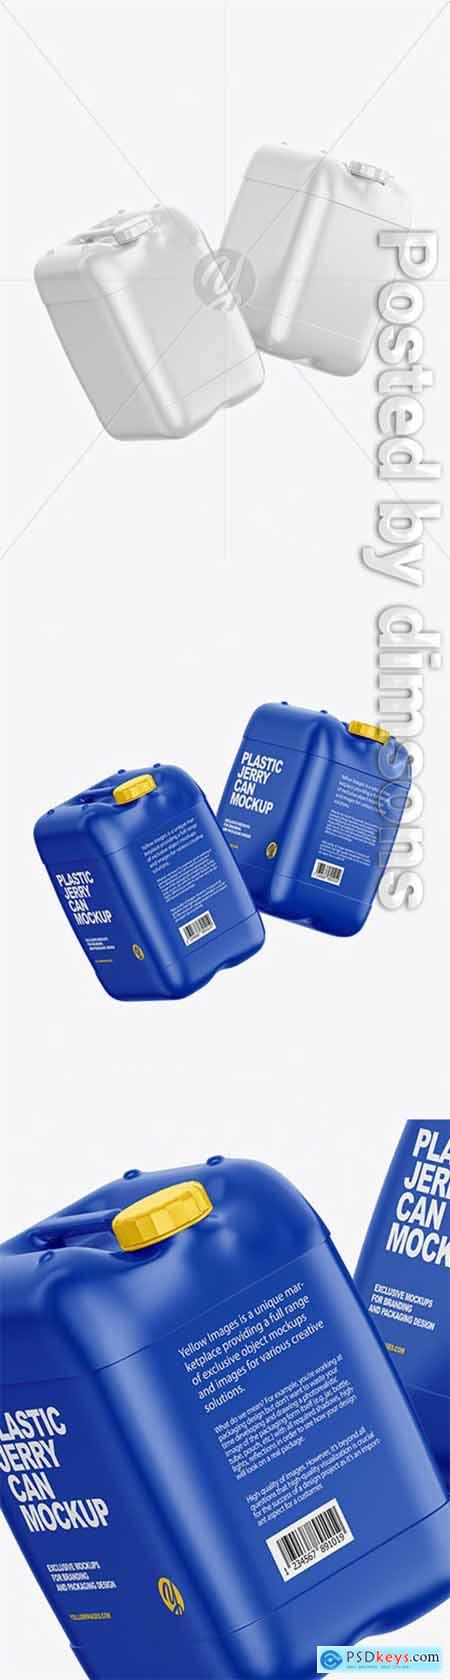 Two Plastic Jerry Cans Mockup 63206